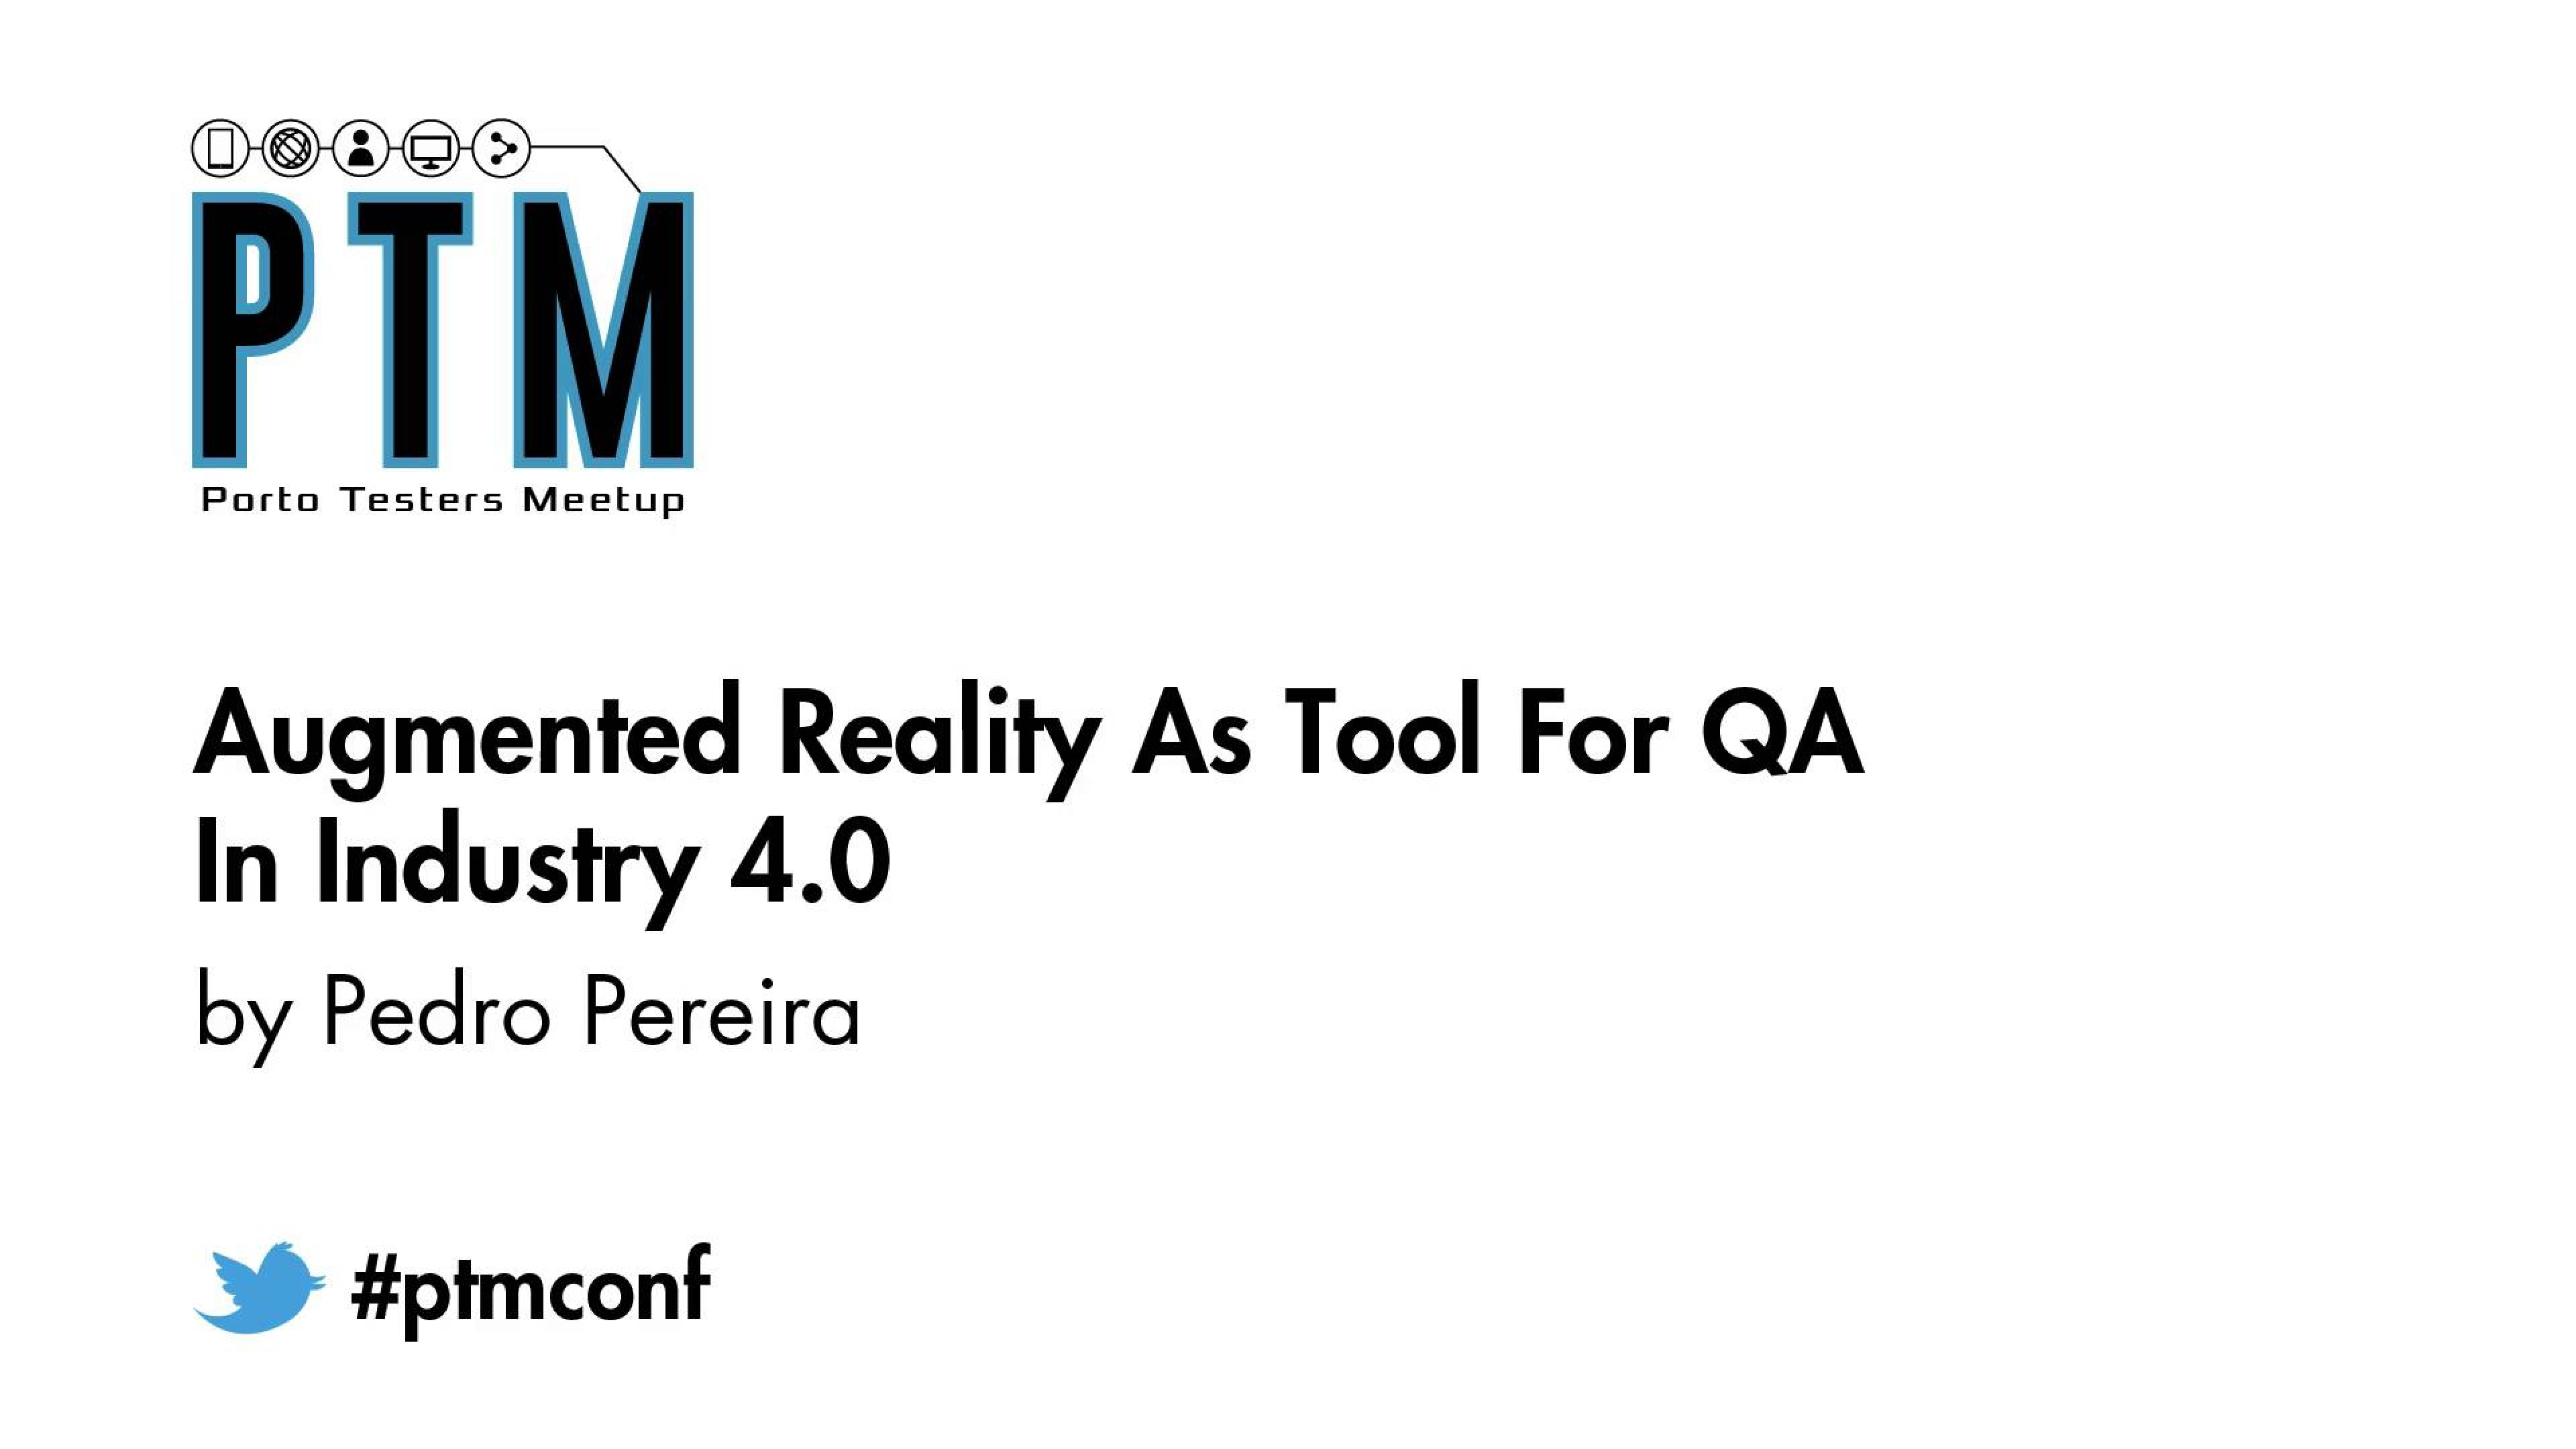 Augmented Reality as tool for QA in Industry 4.0 - Pedro Pereira